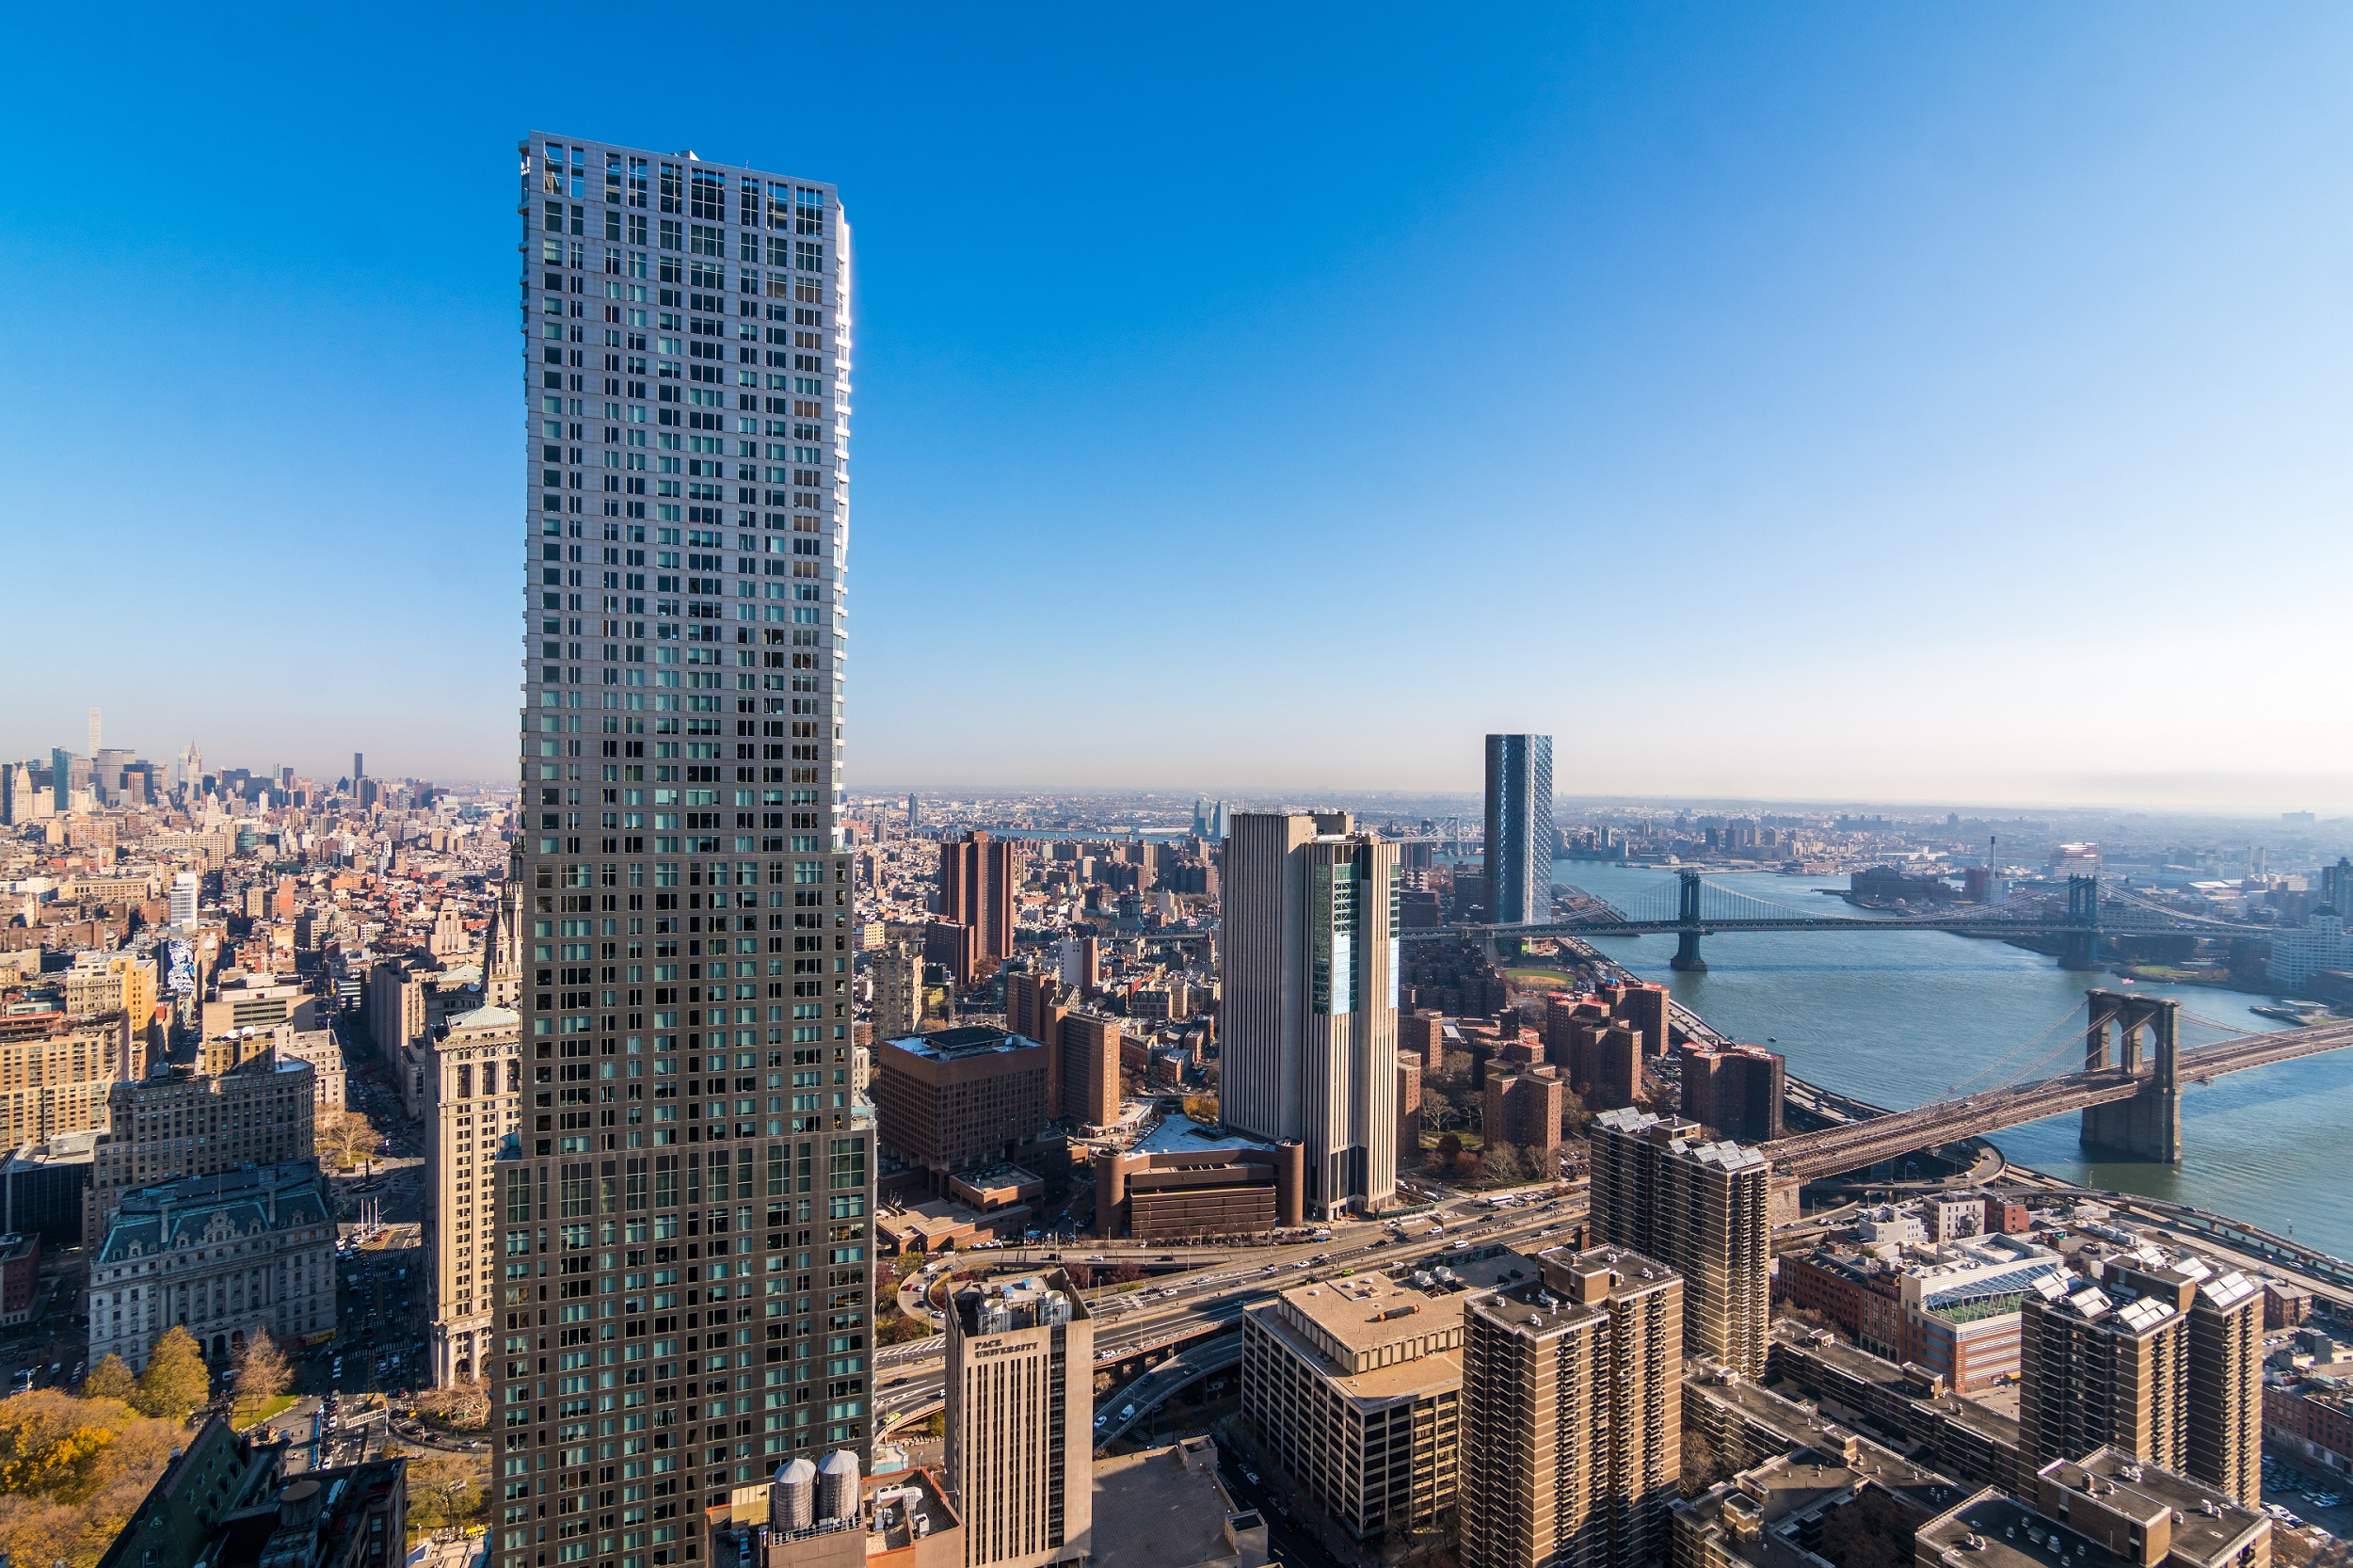 aerial view of NYC and 19 Dutch luxury high rise apartments in the financial district